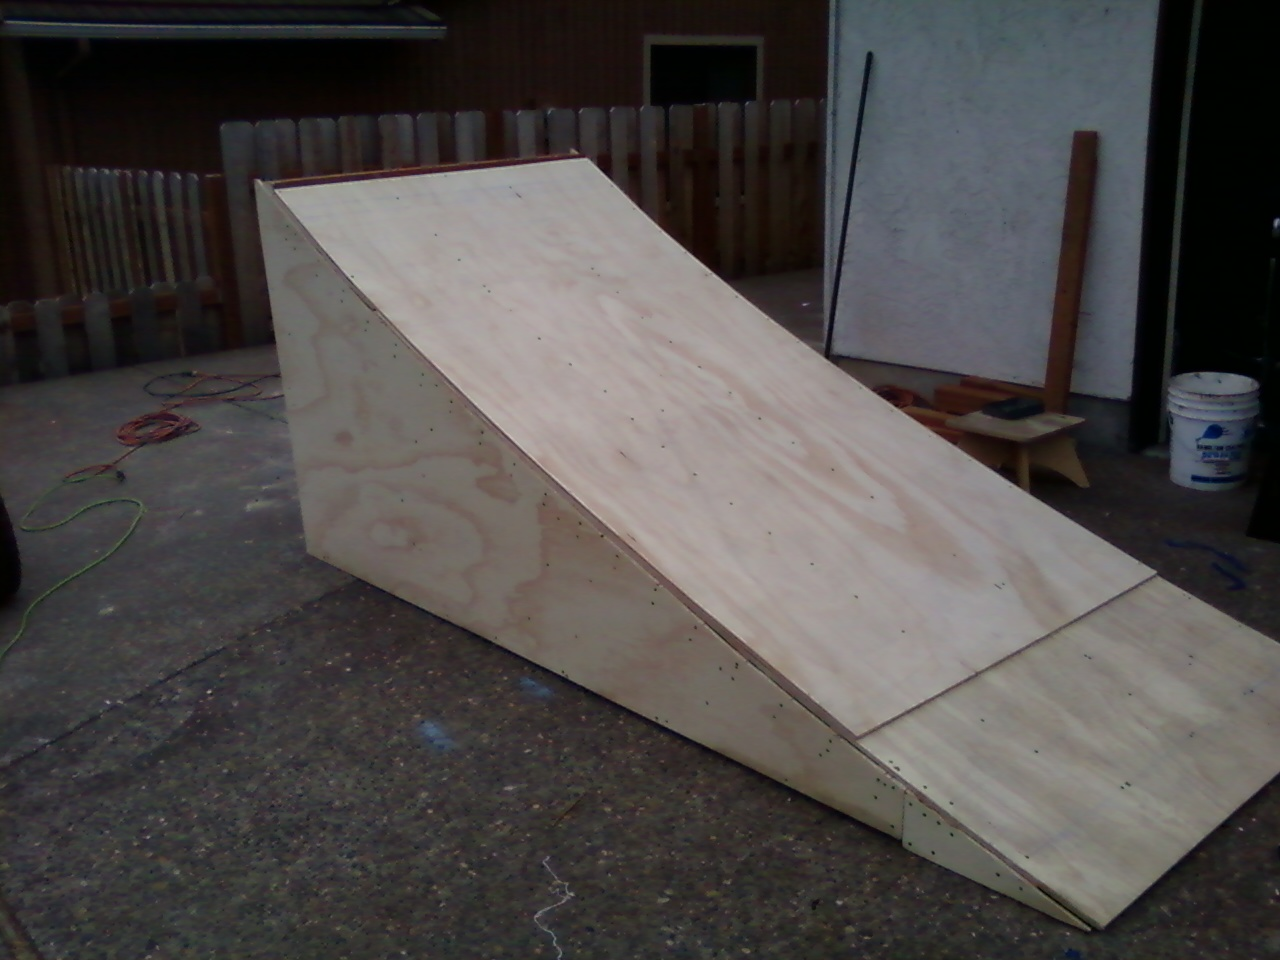 Wood Bmx Ramp Plans Related Keywords Suggestions Wood